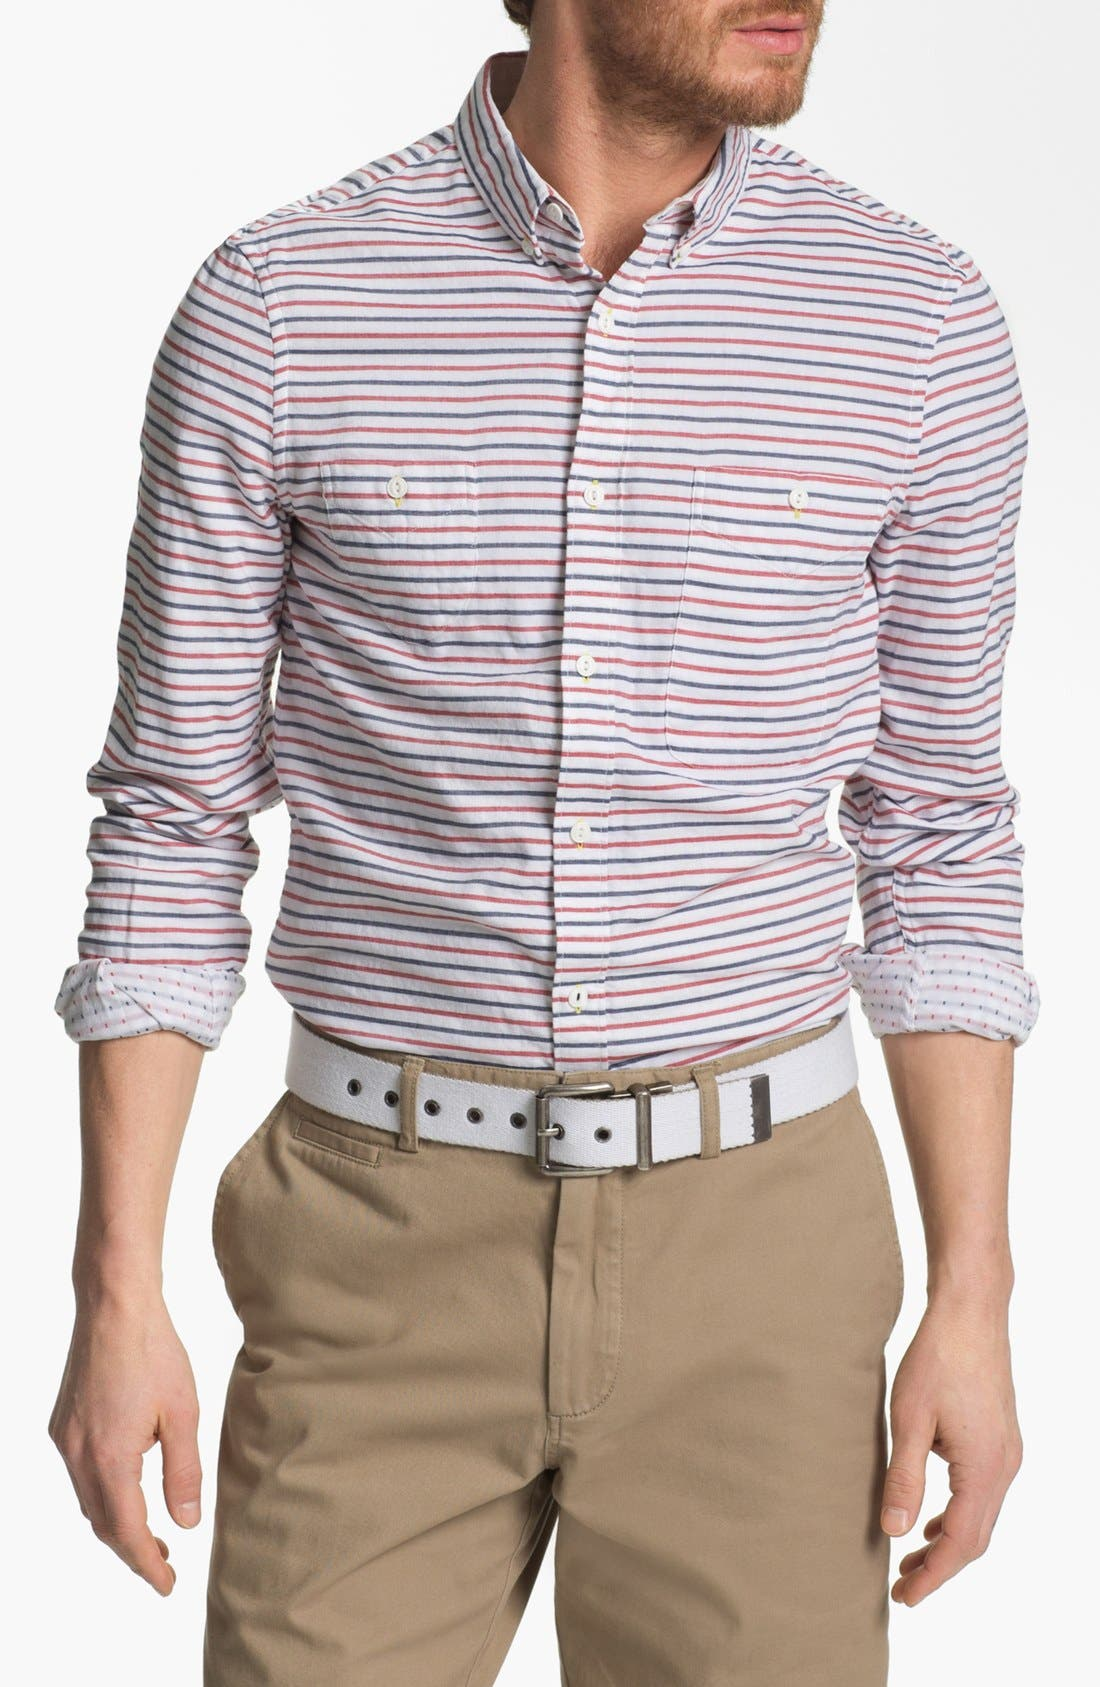 Alternate Image 1 Selected - French Connection 'Dartmouth' Slim Fit Sport Shirt (Online Only)